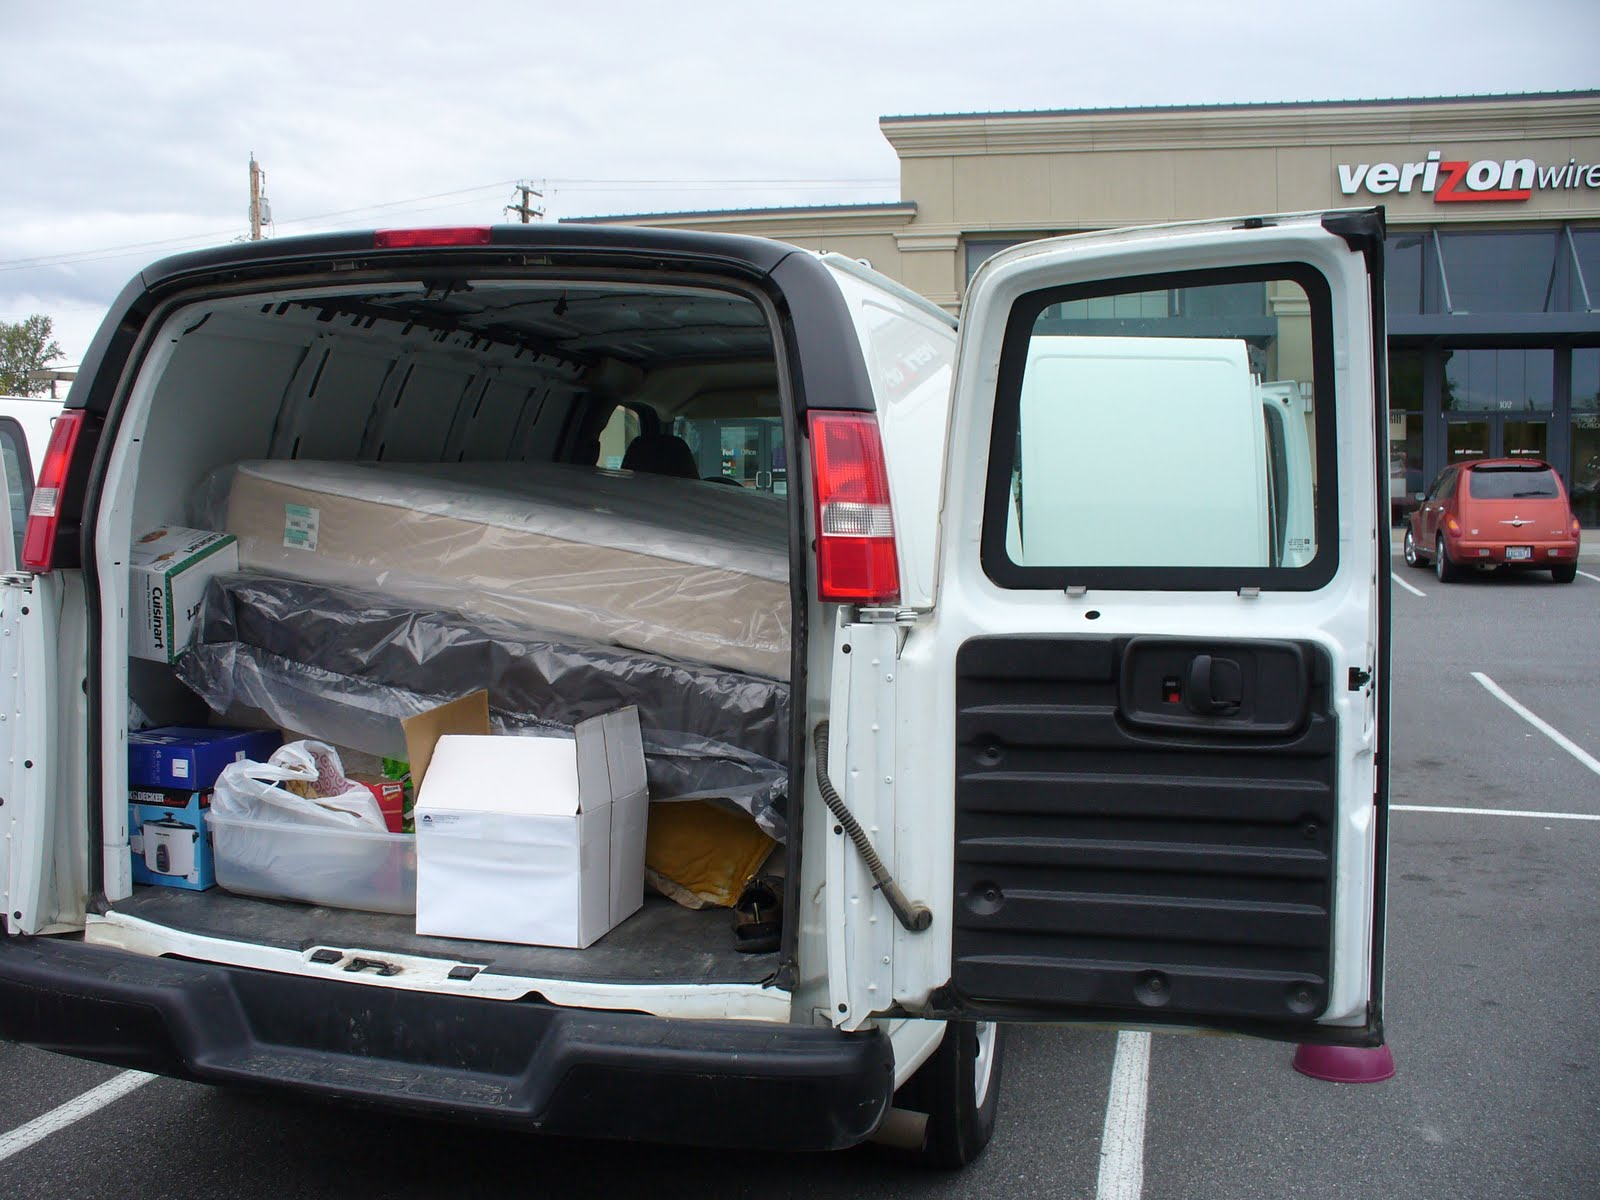 But About 90 Minutes Later We Were Out The Door Cramming A Brand New Mattress Set Into Cargo Van